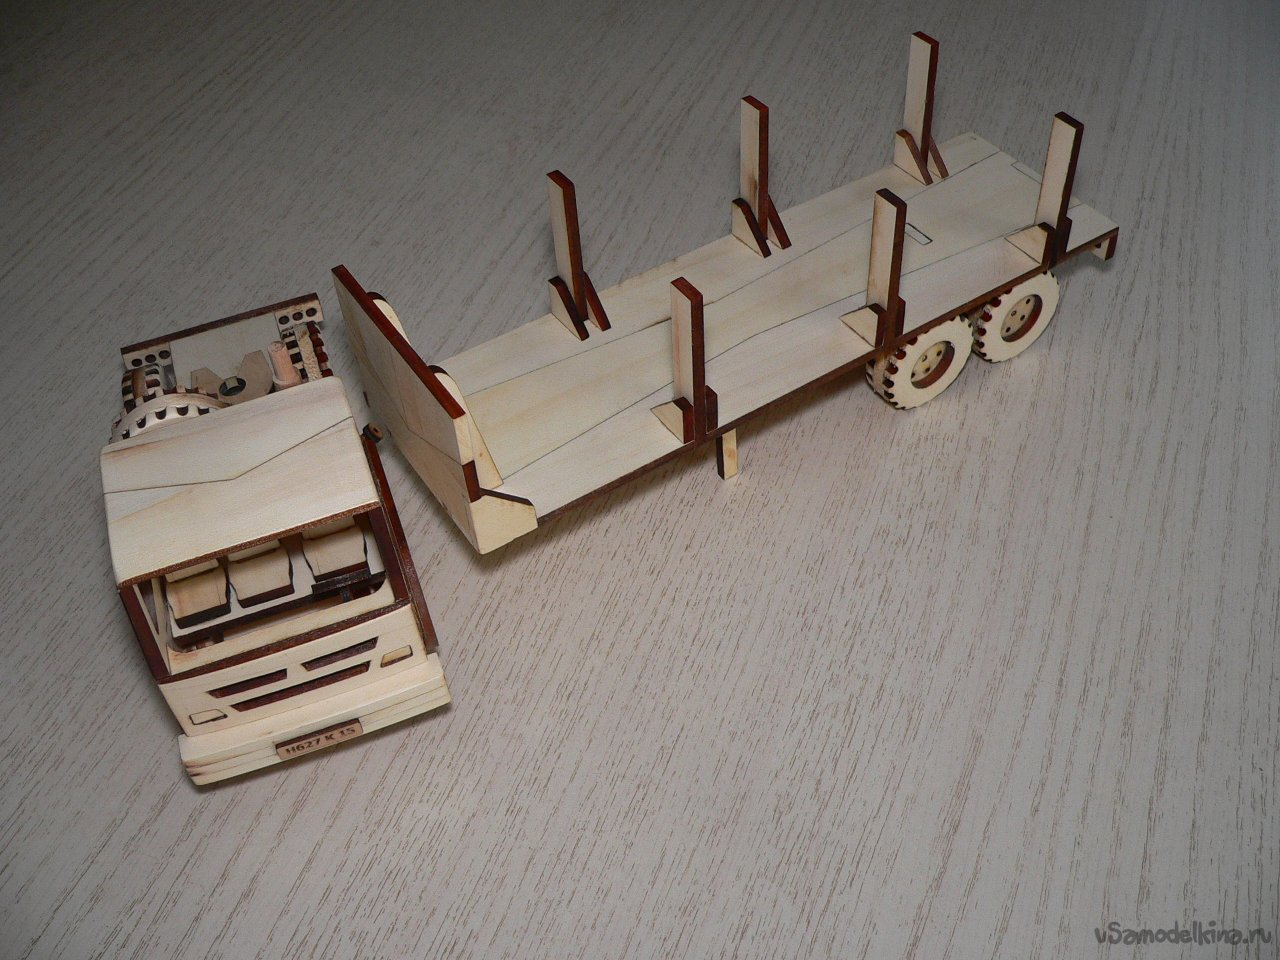 Toy logging car made of wood